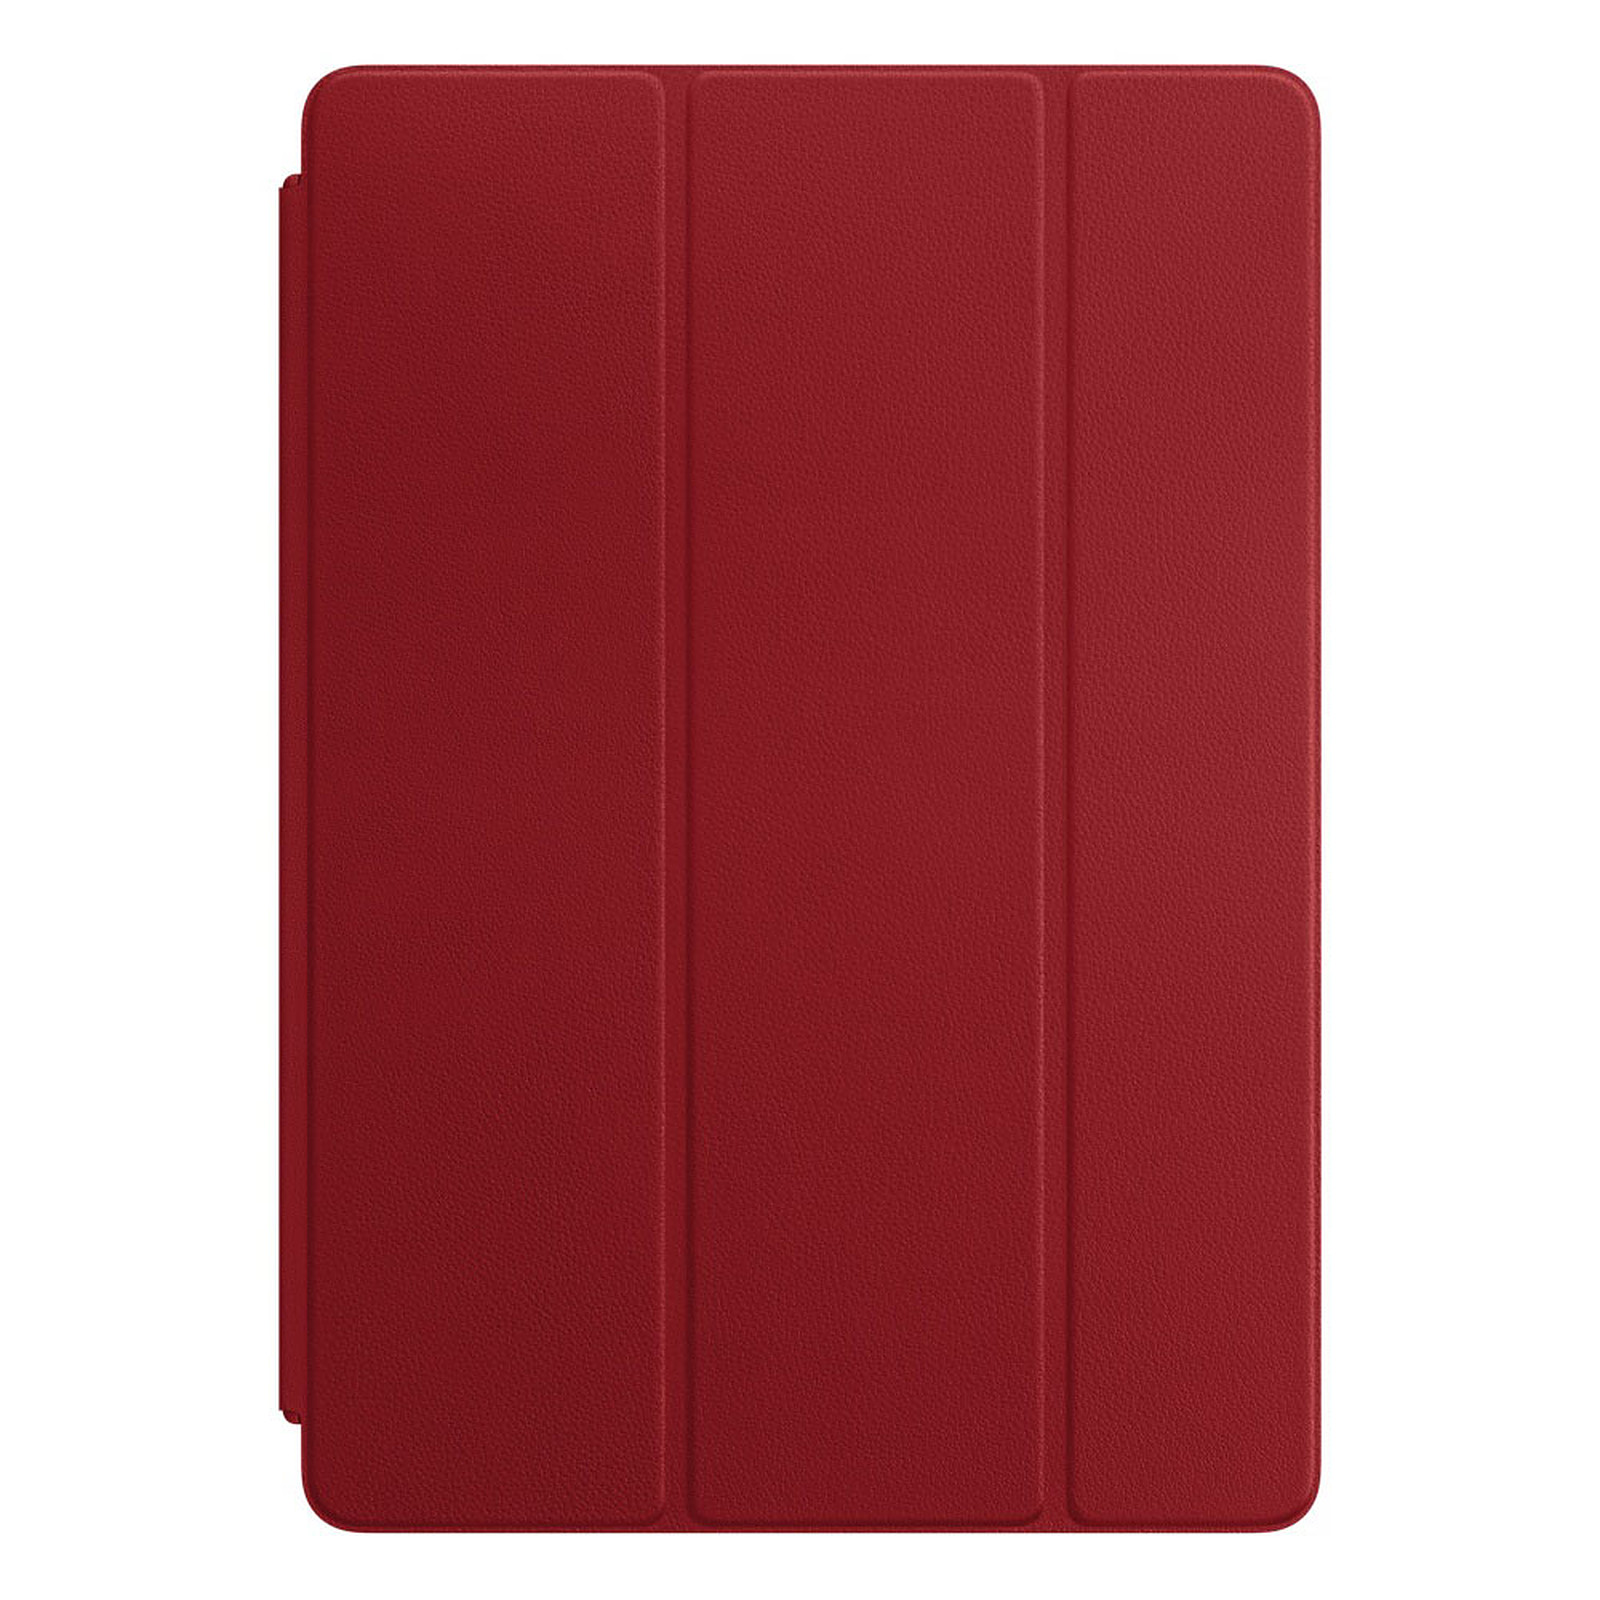 Etui Tablette Apple Ipad Pro 10 5 Quot Smart Cover Cuir Product Red Etui